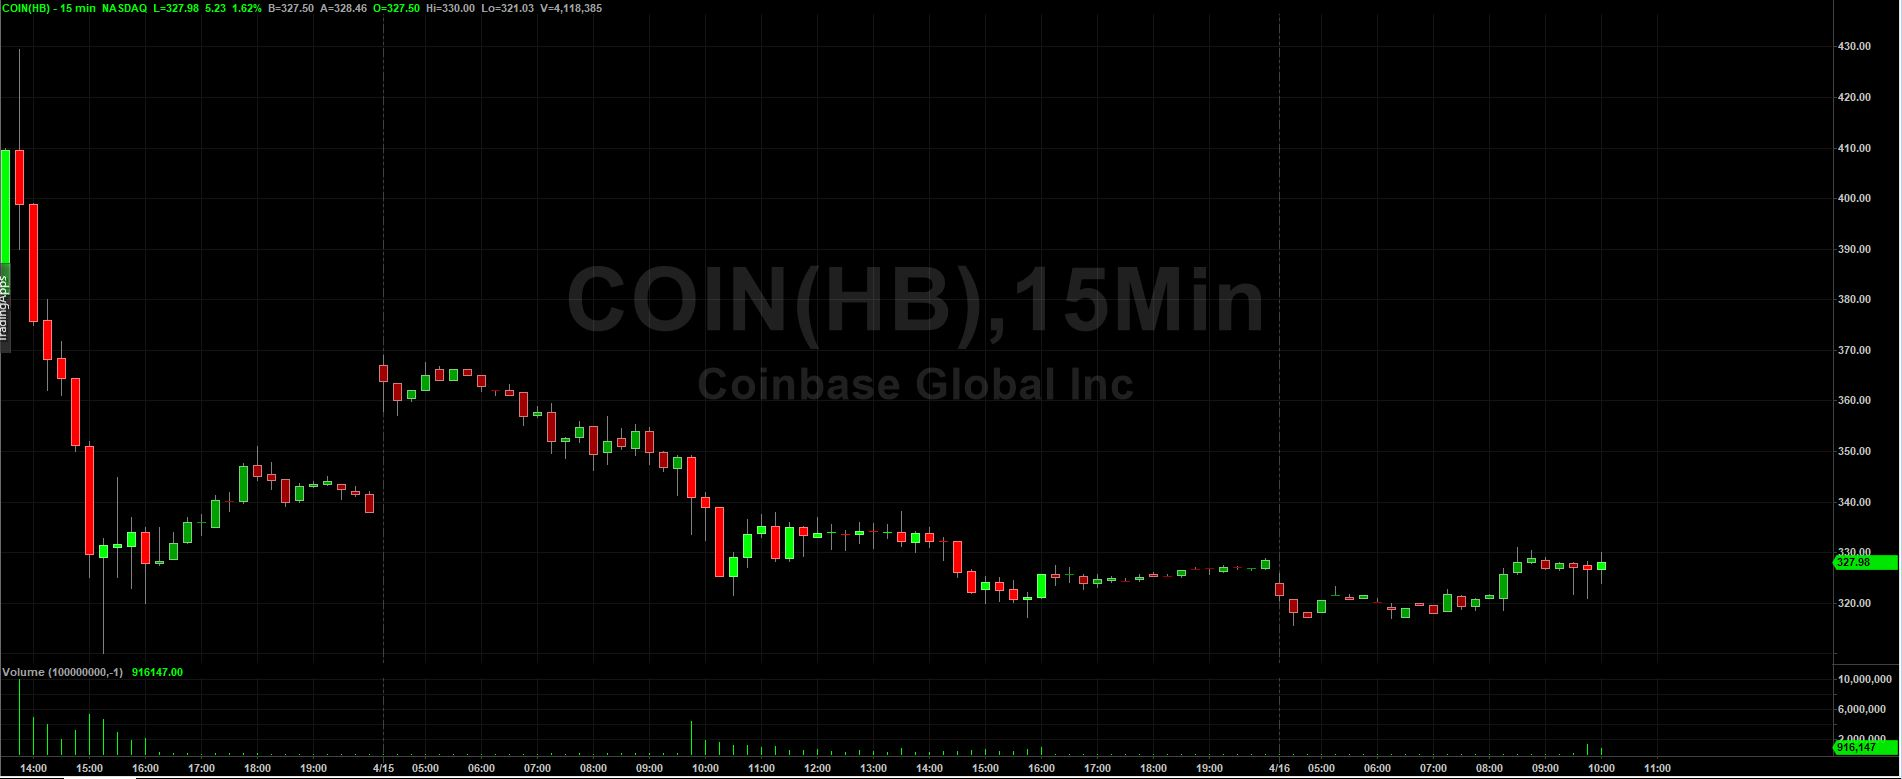 Coinbase Goes Public: Is It A Buy?